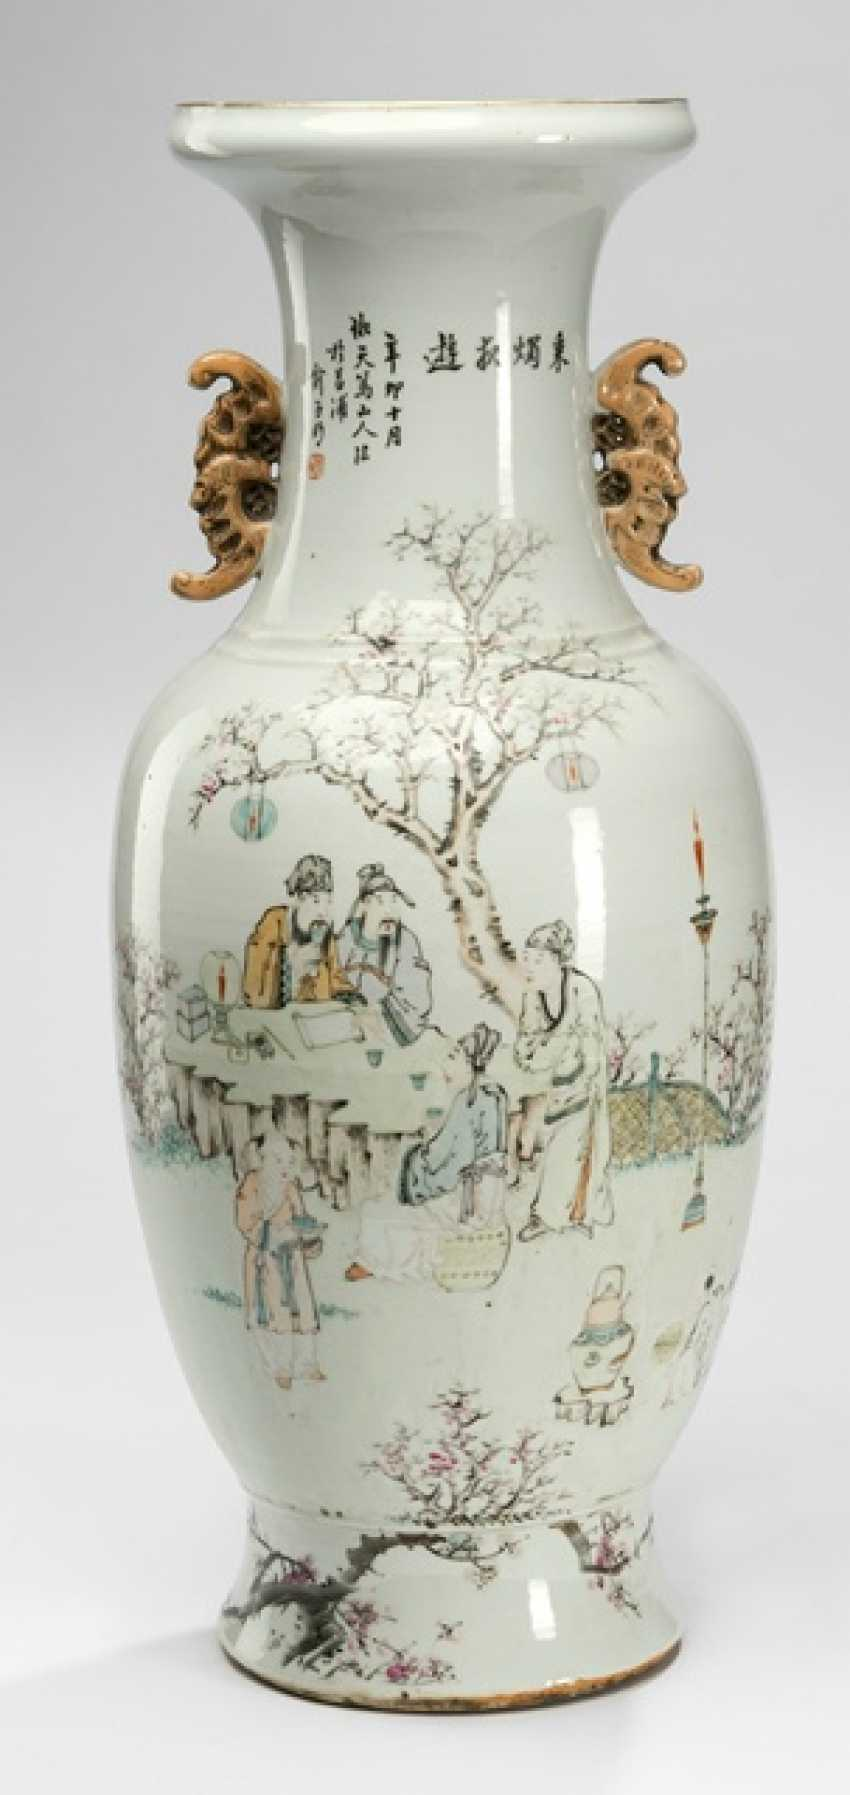 Vase made of porcelain with scholars, overleaf peonies and birds - photo 2